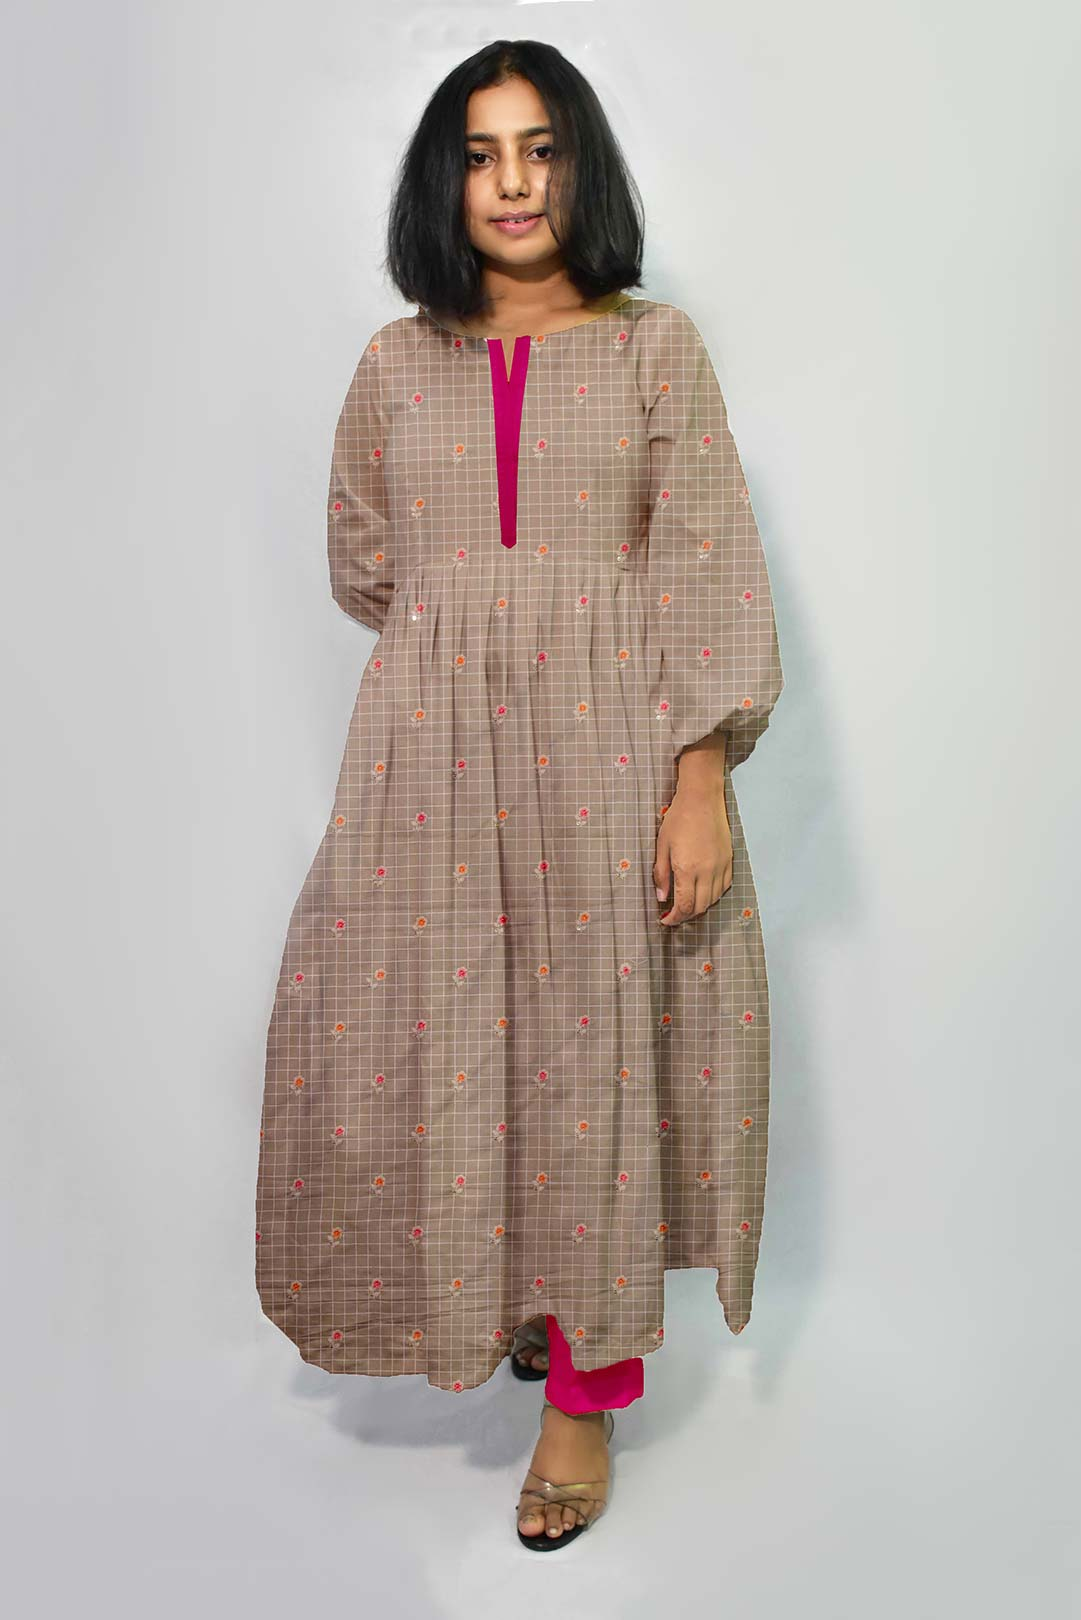 Cotton Embroidery Frock Style Suit – Pie in the sky